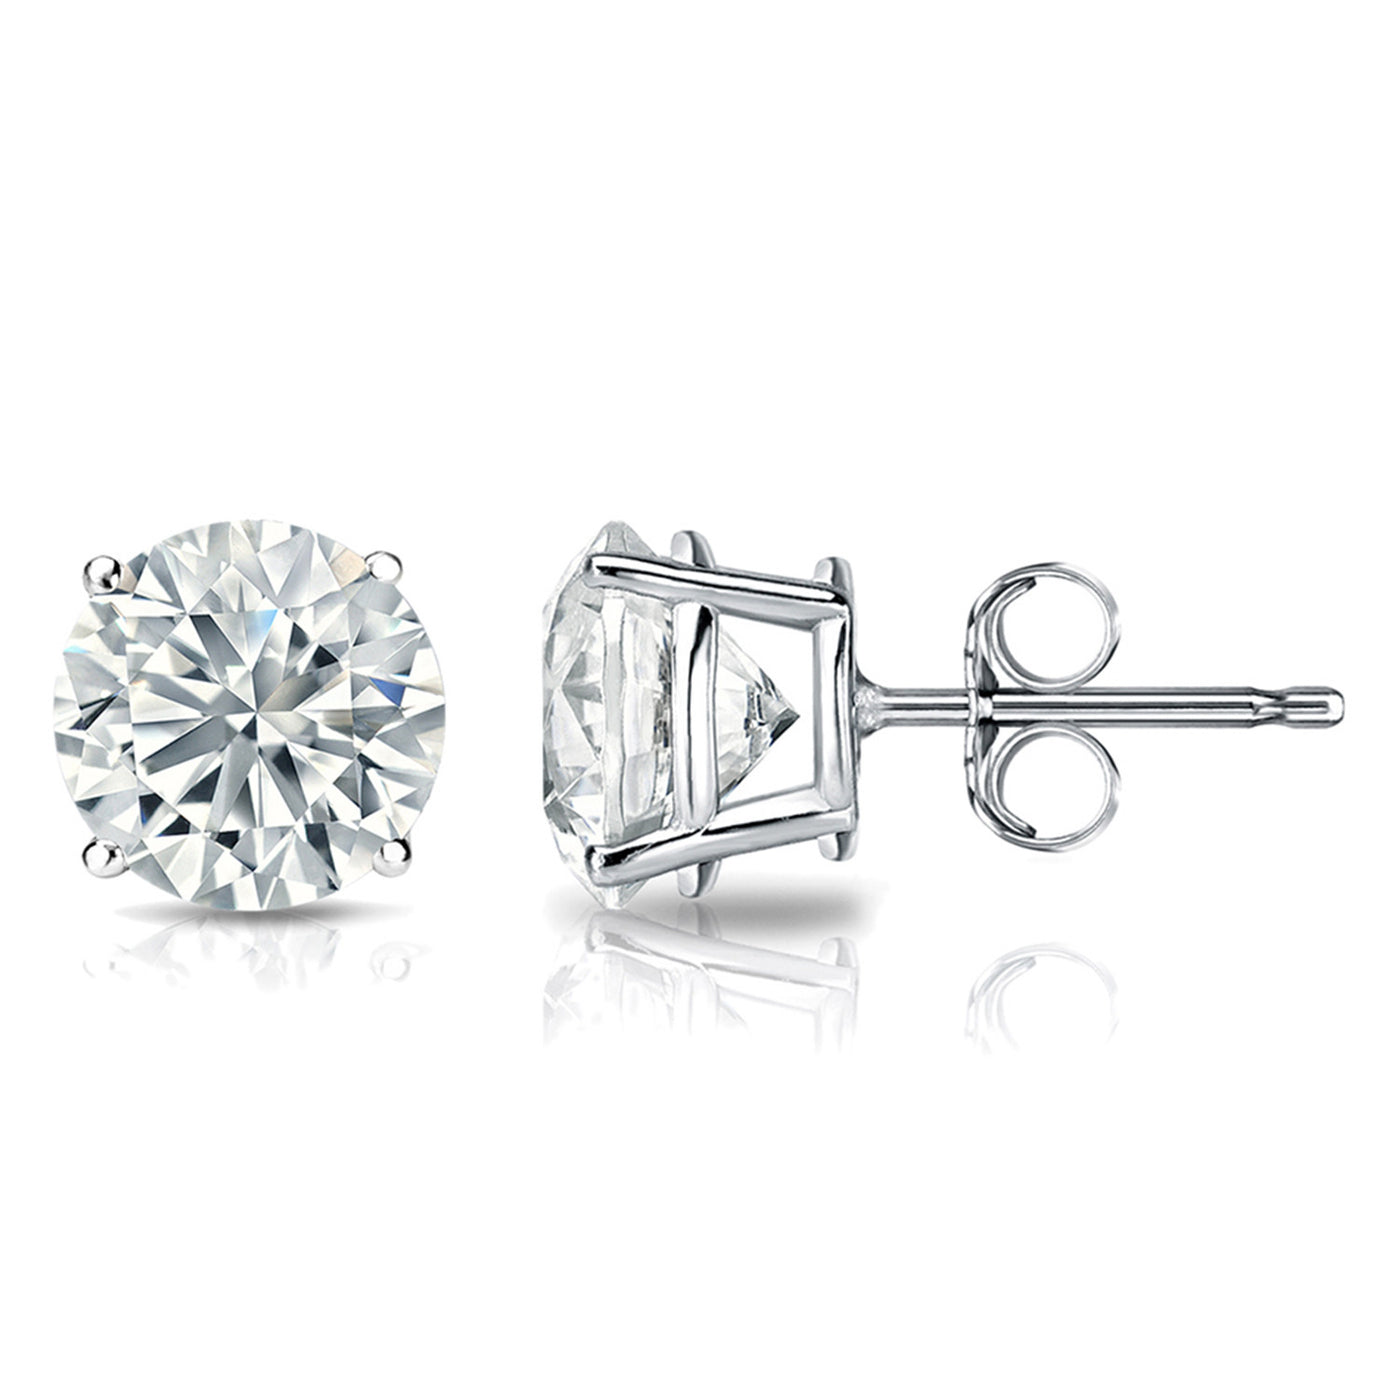 3/4 Carat Round 14k White Gold 4 Prong Basket Set Diamond Solitaire Stud Earrings (Classic Quality)